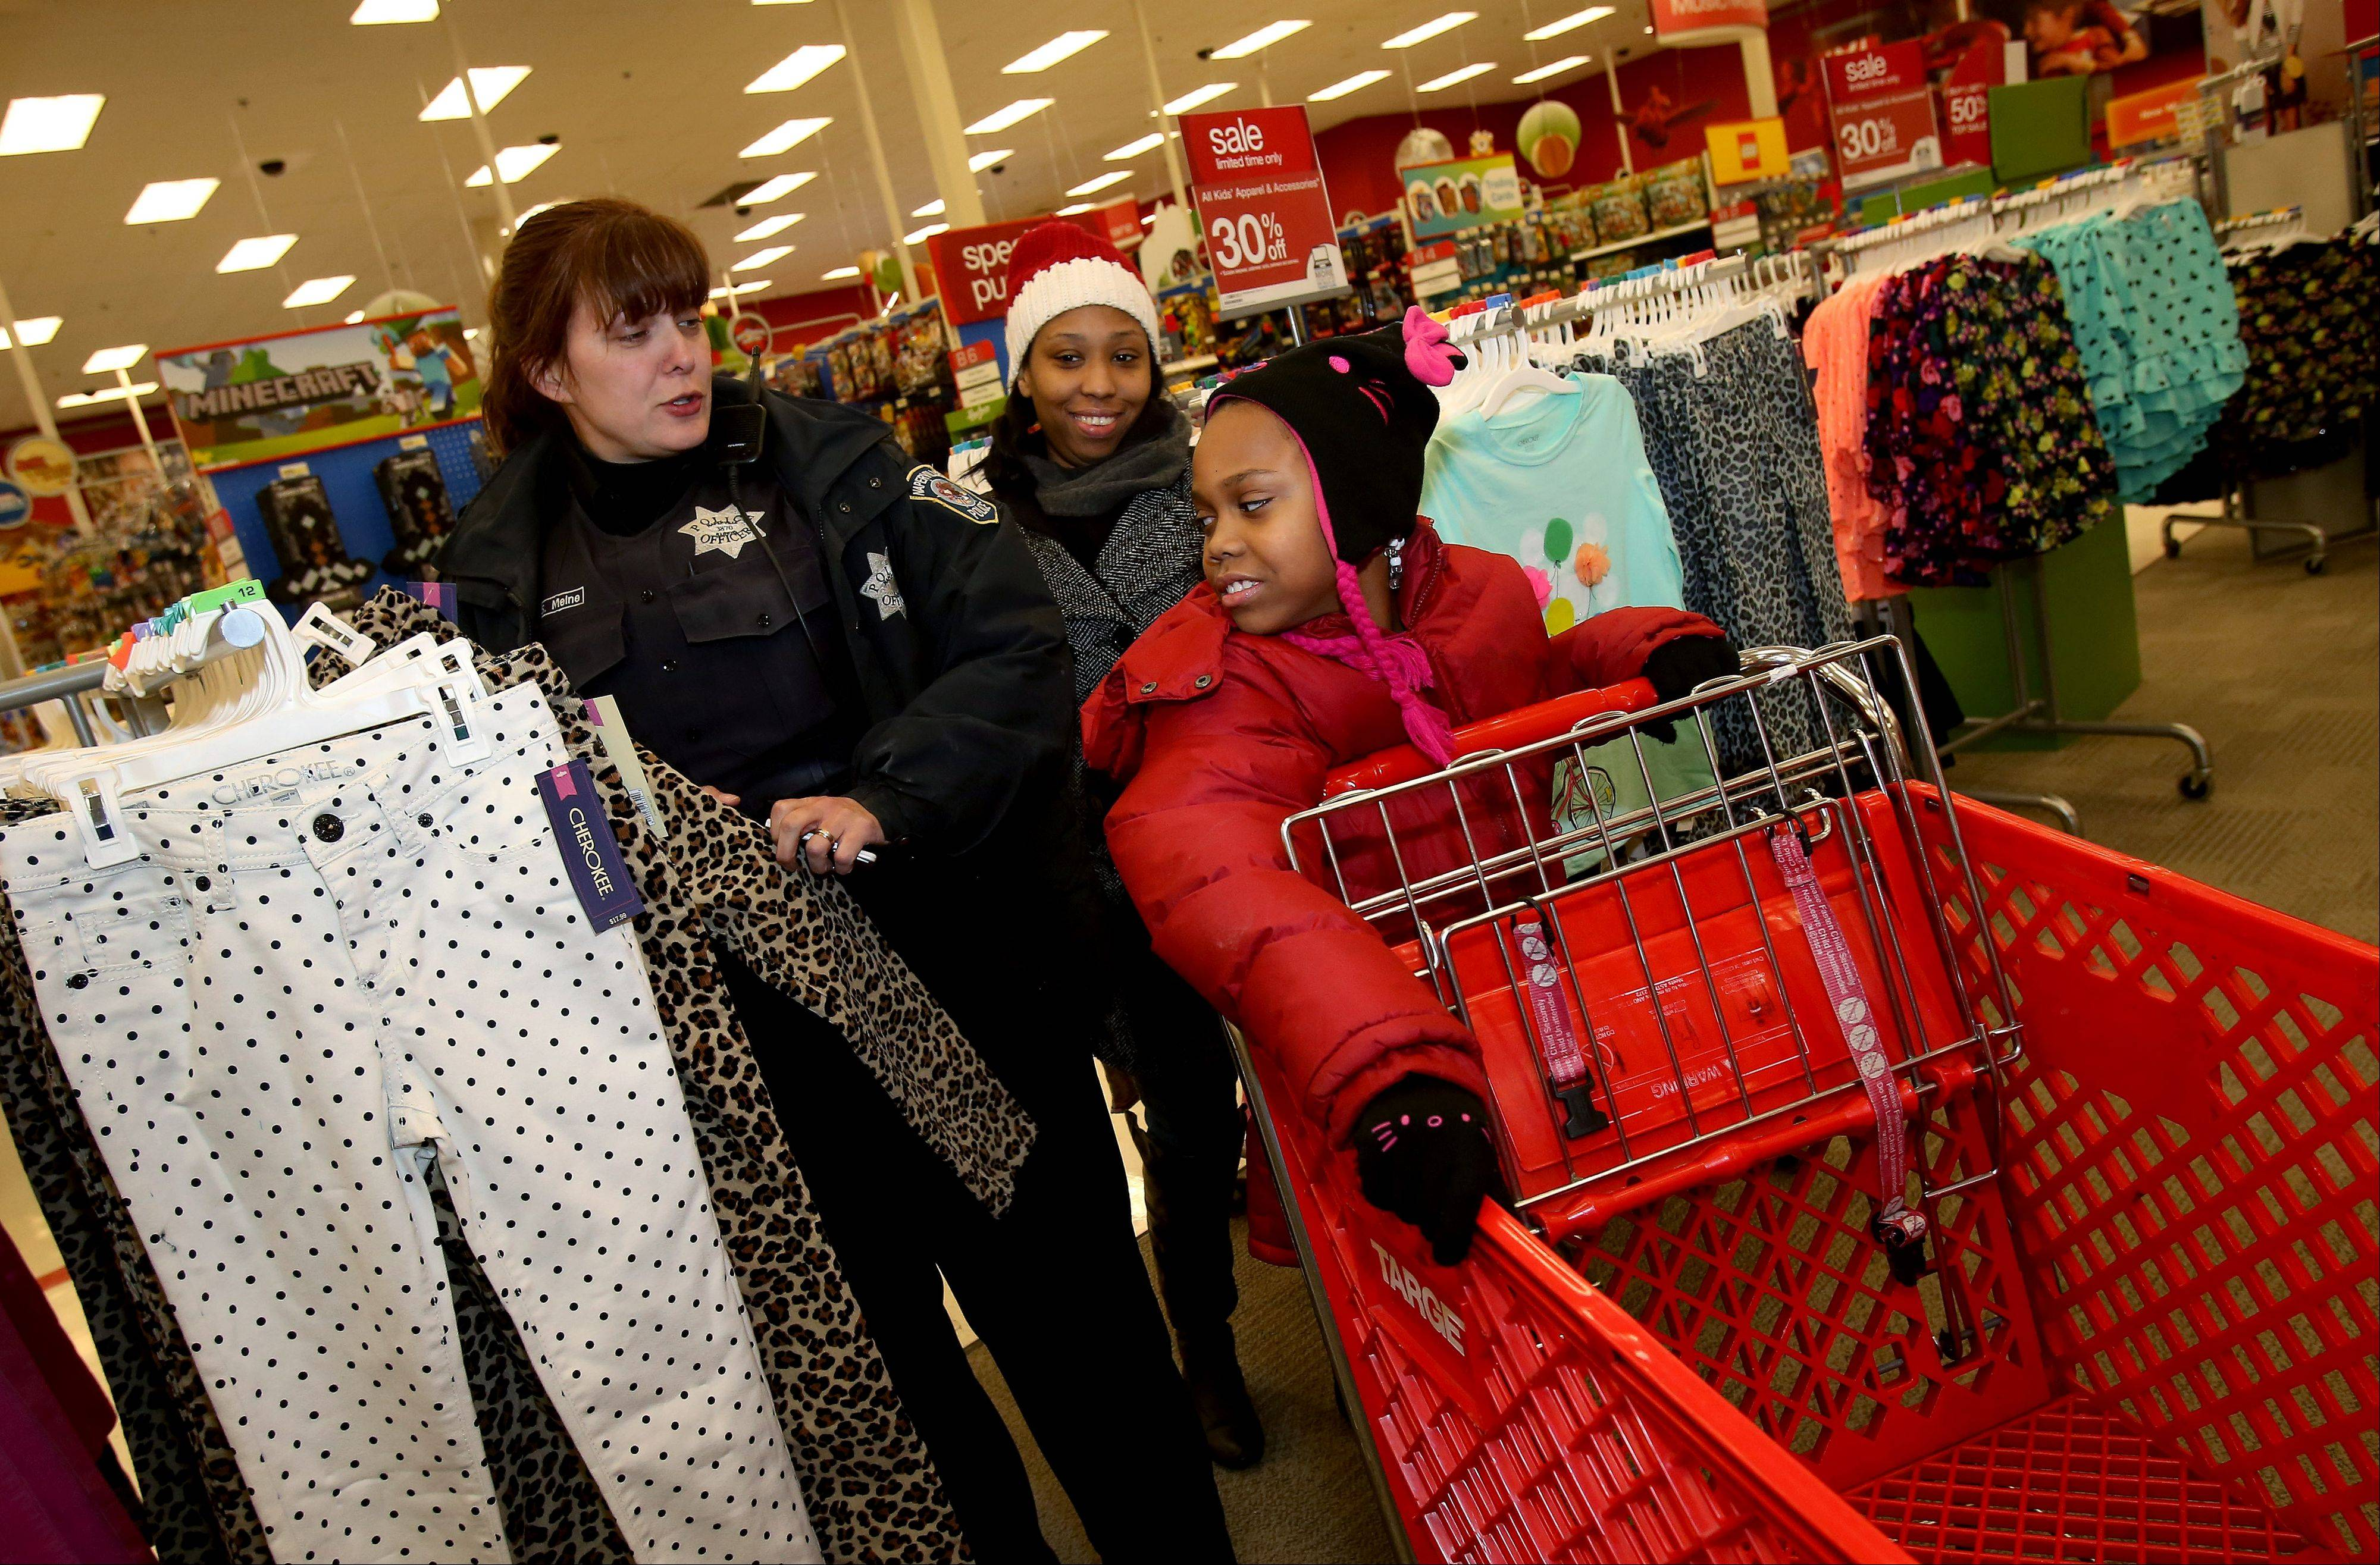 Naperville police officer Sherry Meine takes Carissa Blackwell and her 9-year-old daughter, Christiona, to look at clothes during the Cops with Kids event Tuesday at the Super Target in Naperville.